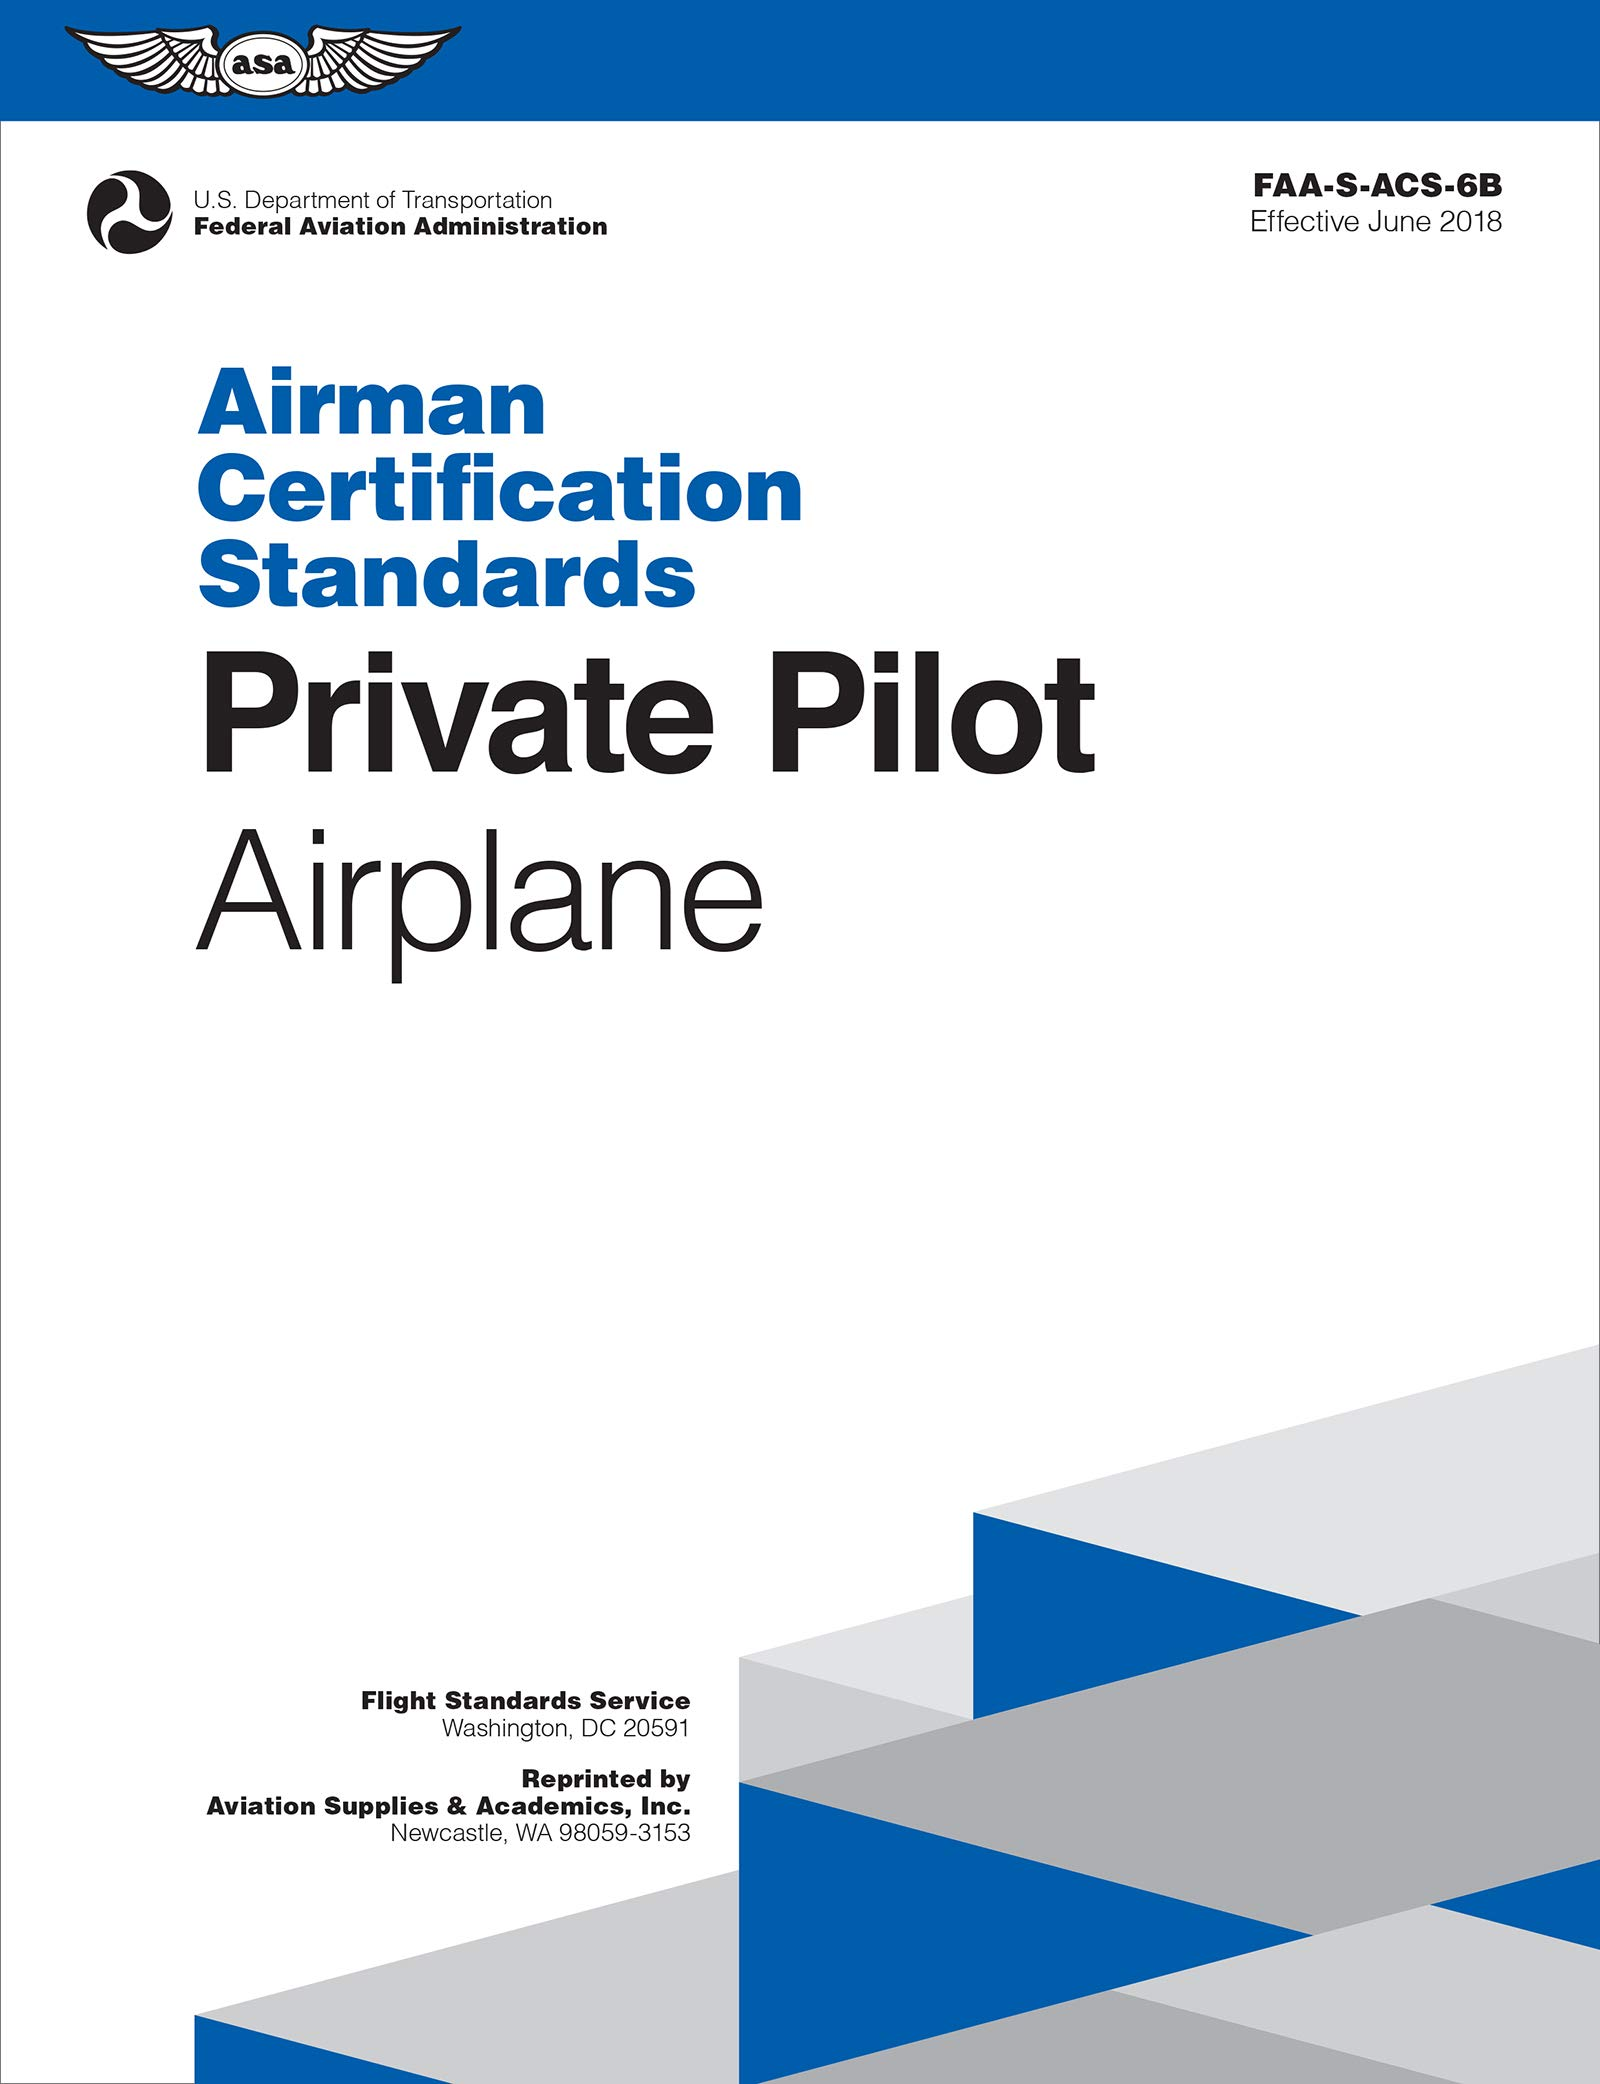 Private Pilot Airman Certification Standards - Airplane: FAA